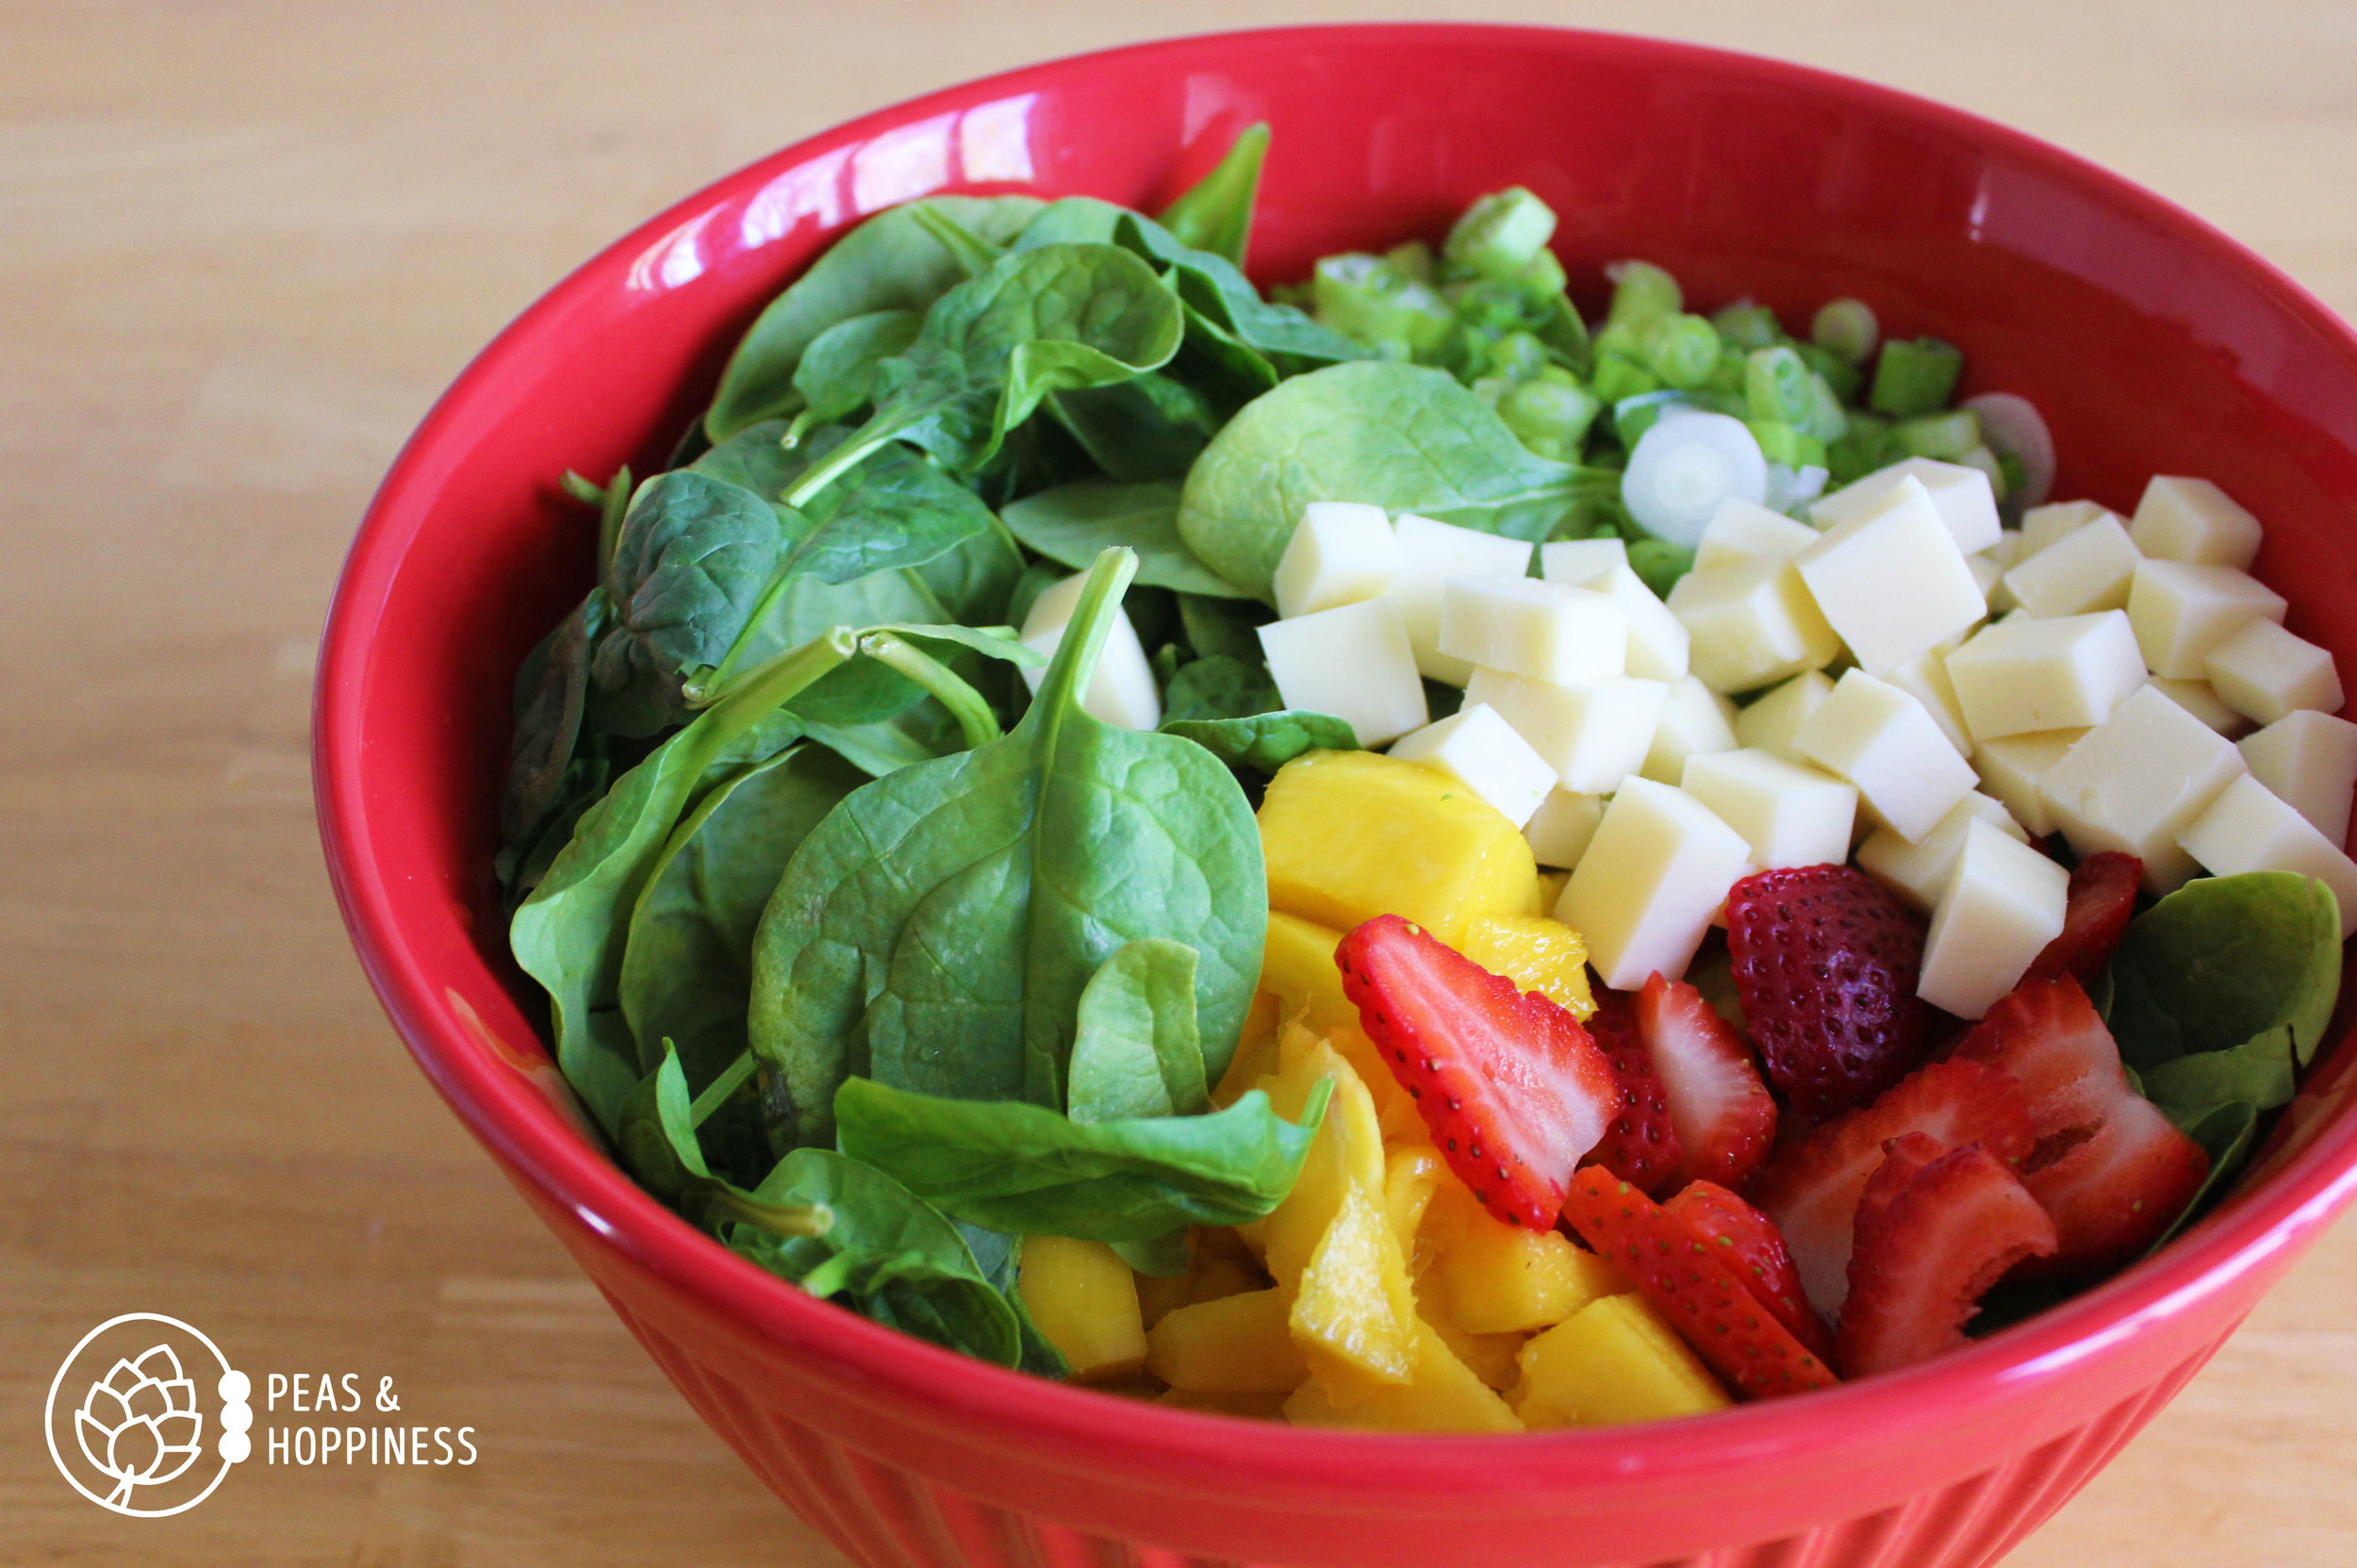 Strawberry Mango Spinach Salad from Peas and Hoppiness - www.peasandhoppiness.com